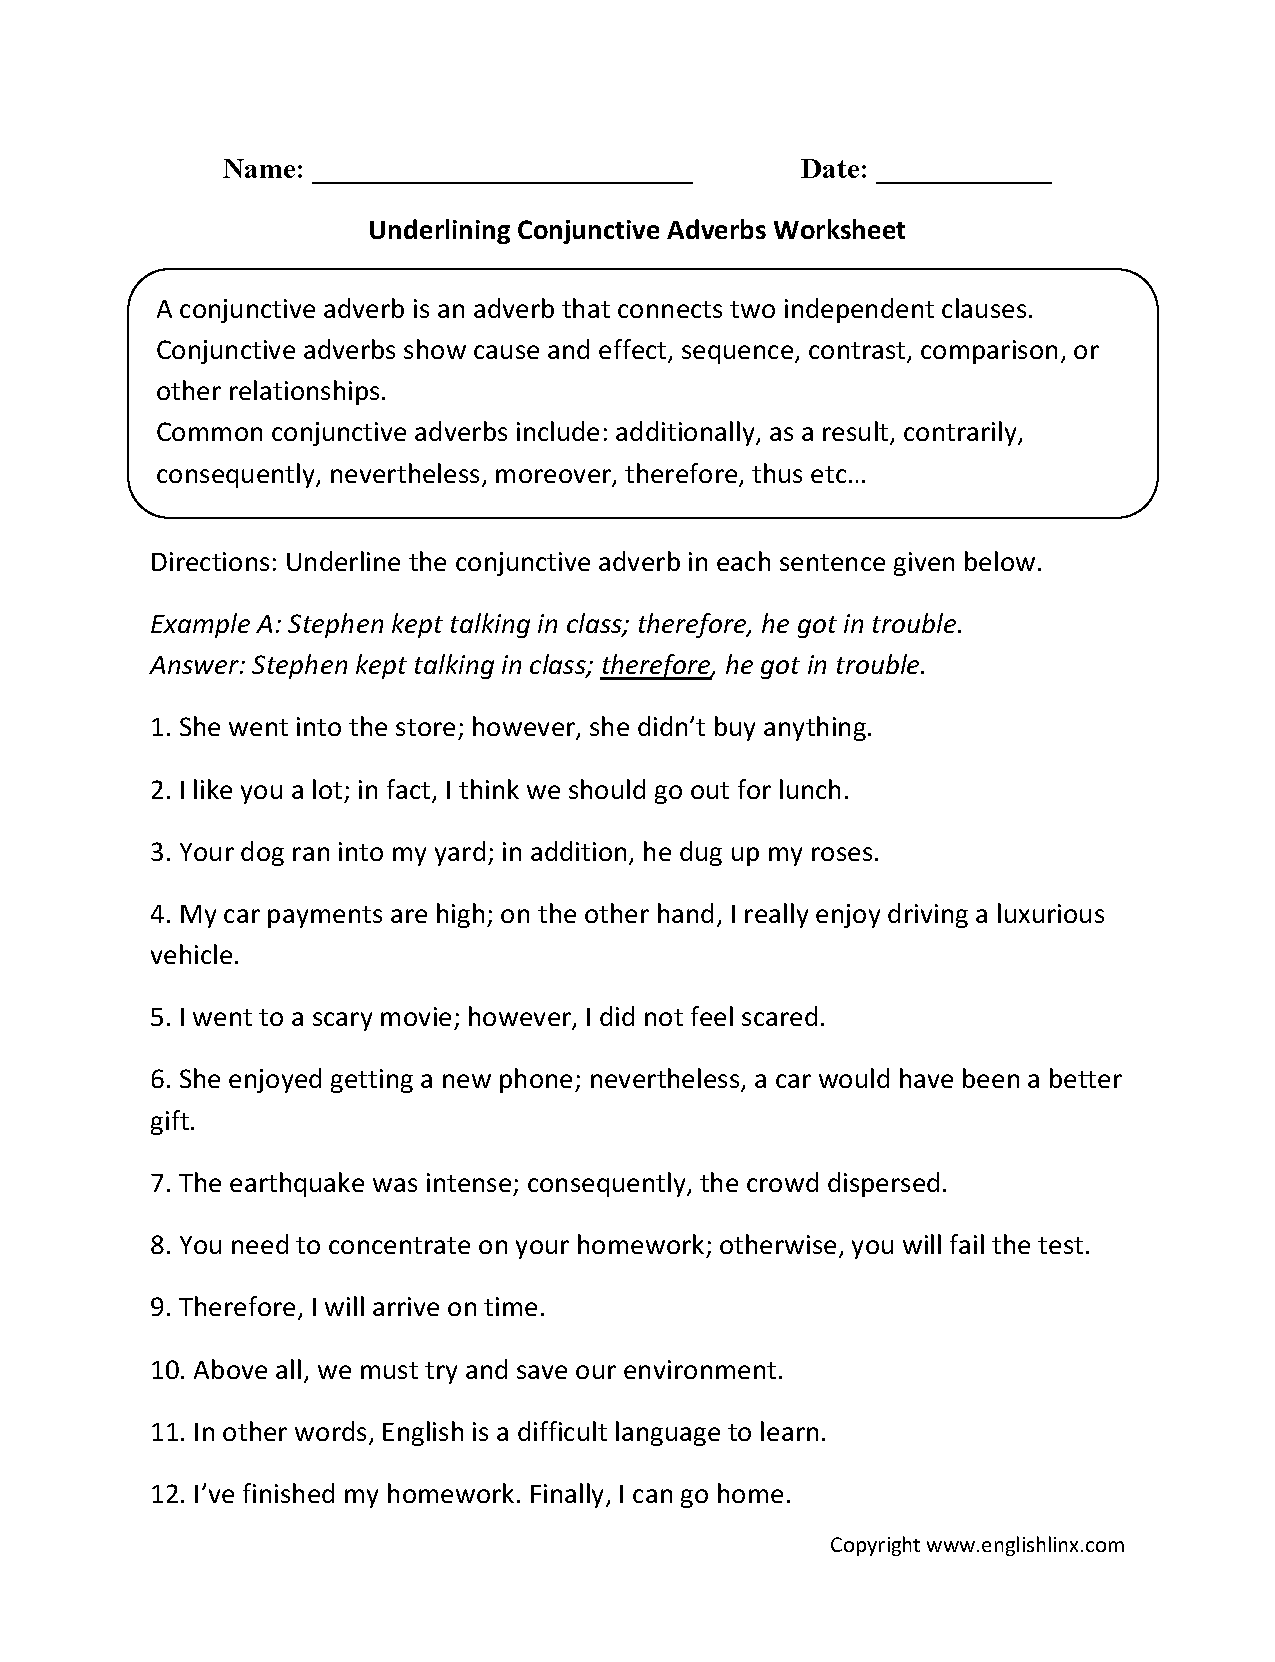 Weirdmailus  Pleasant Englishlinxcom  Conjunctions Worksheets With Fetching Worksheet With Attractive Free Theme Worksheets Also Professional Goal Setting Worksheet In Addition Basic Geography Worksheets And Alphabetizing Worksheet As Well As Non Verbal Reasoning Worksheets Additionally Free Th Grade Language Arts Worksheets From Englishlinxcom With Weirdmailus  Fetching Englishlinxcom  Conjunctions Worksheets With Attractive Worksheet And Pleasant Free Theme Worksheets Also Professional Goal Setting Worksheet In Addition Basic Geography Worksheets From Englishlinxcom